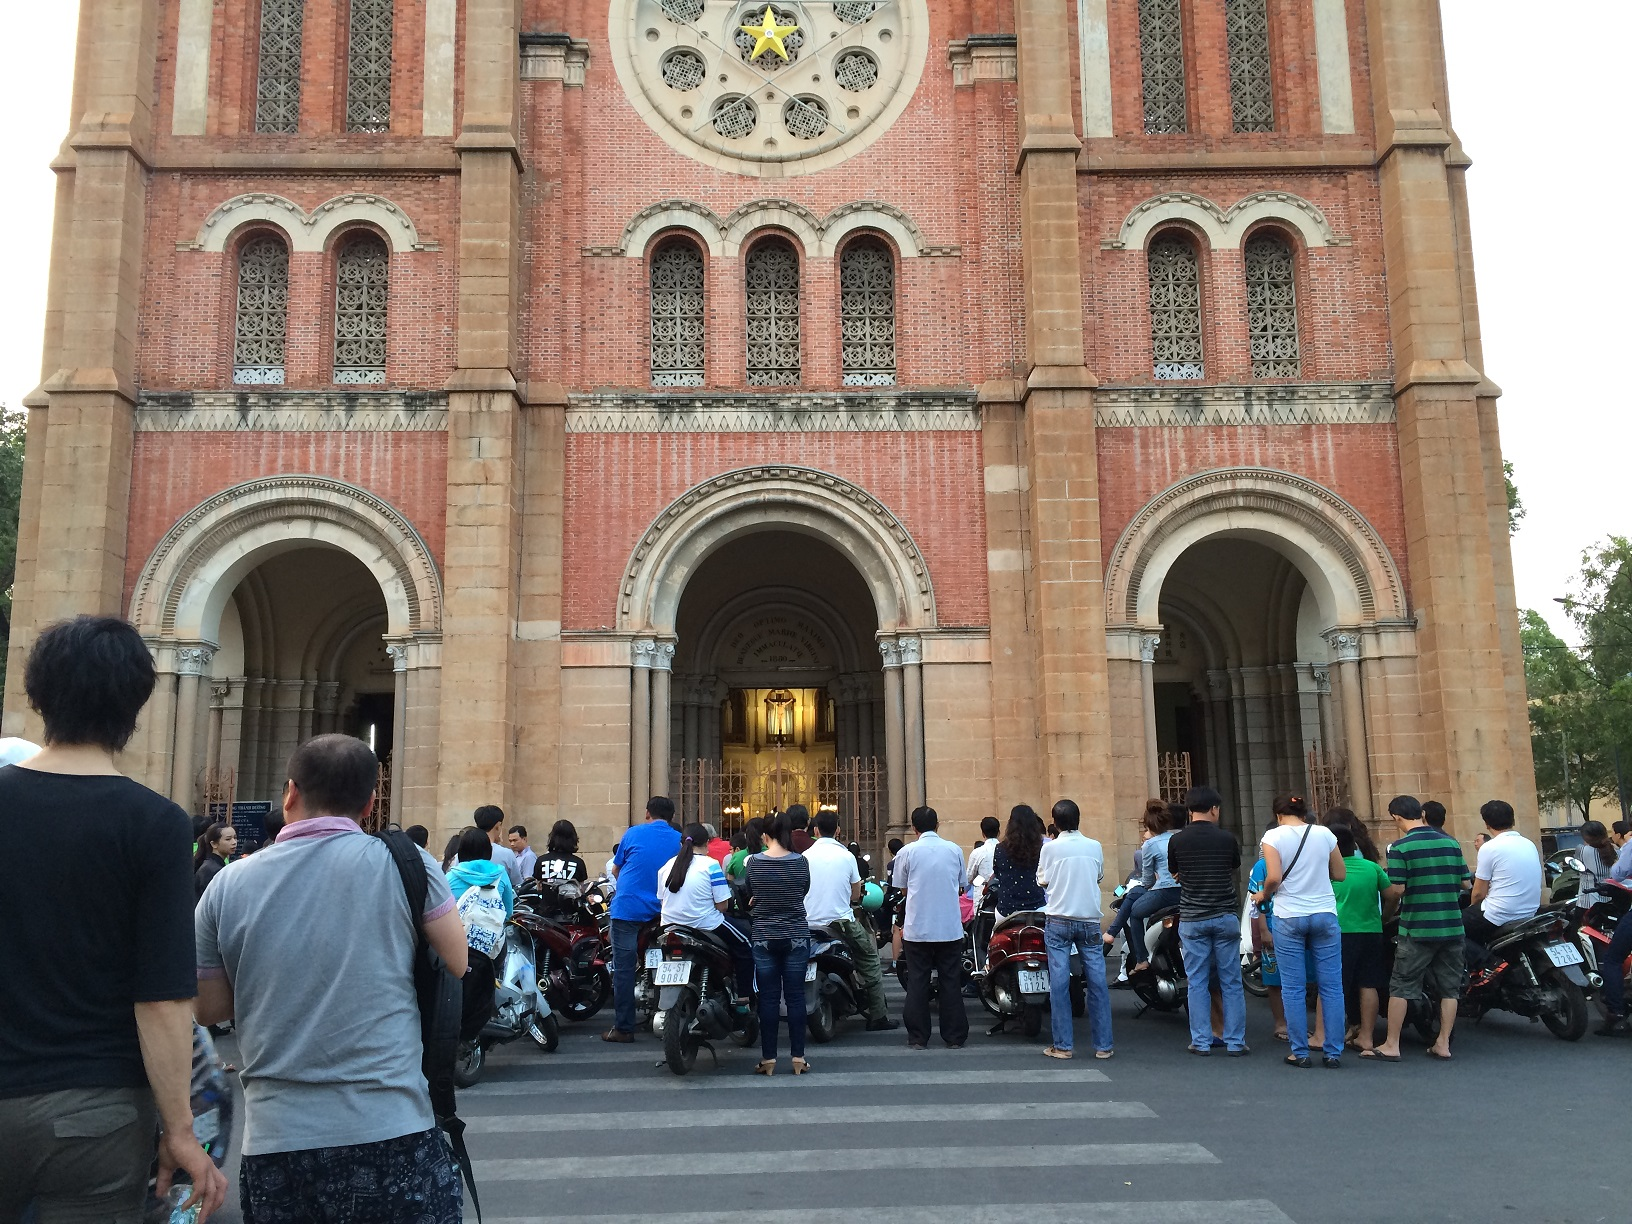 Attending mass at the Saigon Notre-Dame Basilica in HCM City